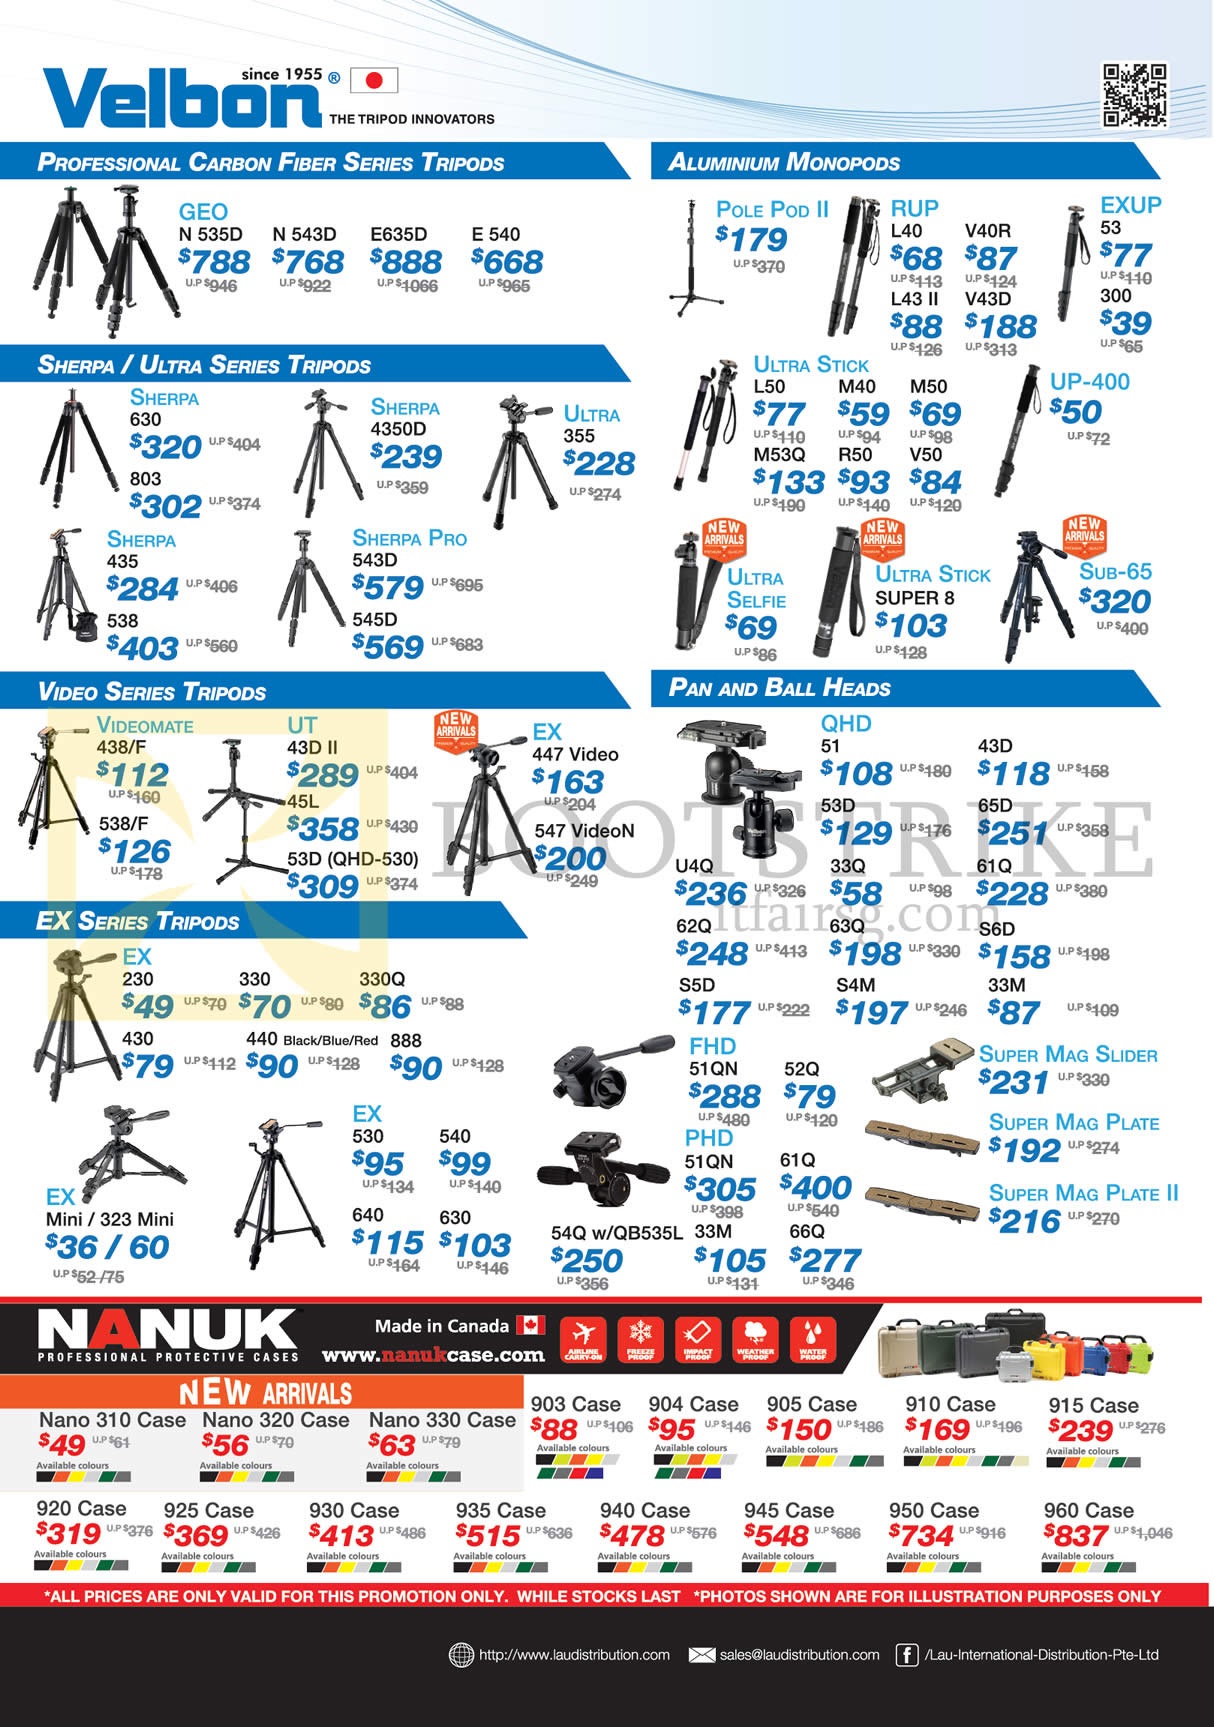 Lau Intl Tripods, Pan, Ball Heads, Cases, Velbon, Sherpa, Nanuk